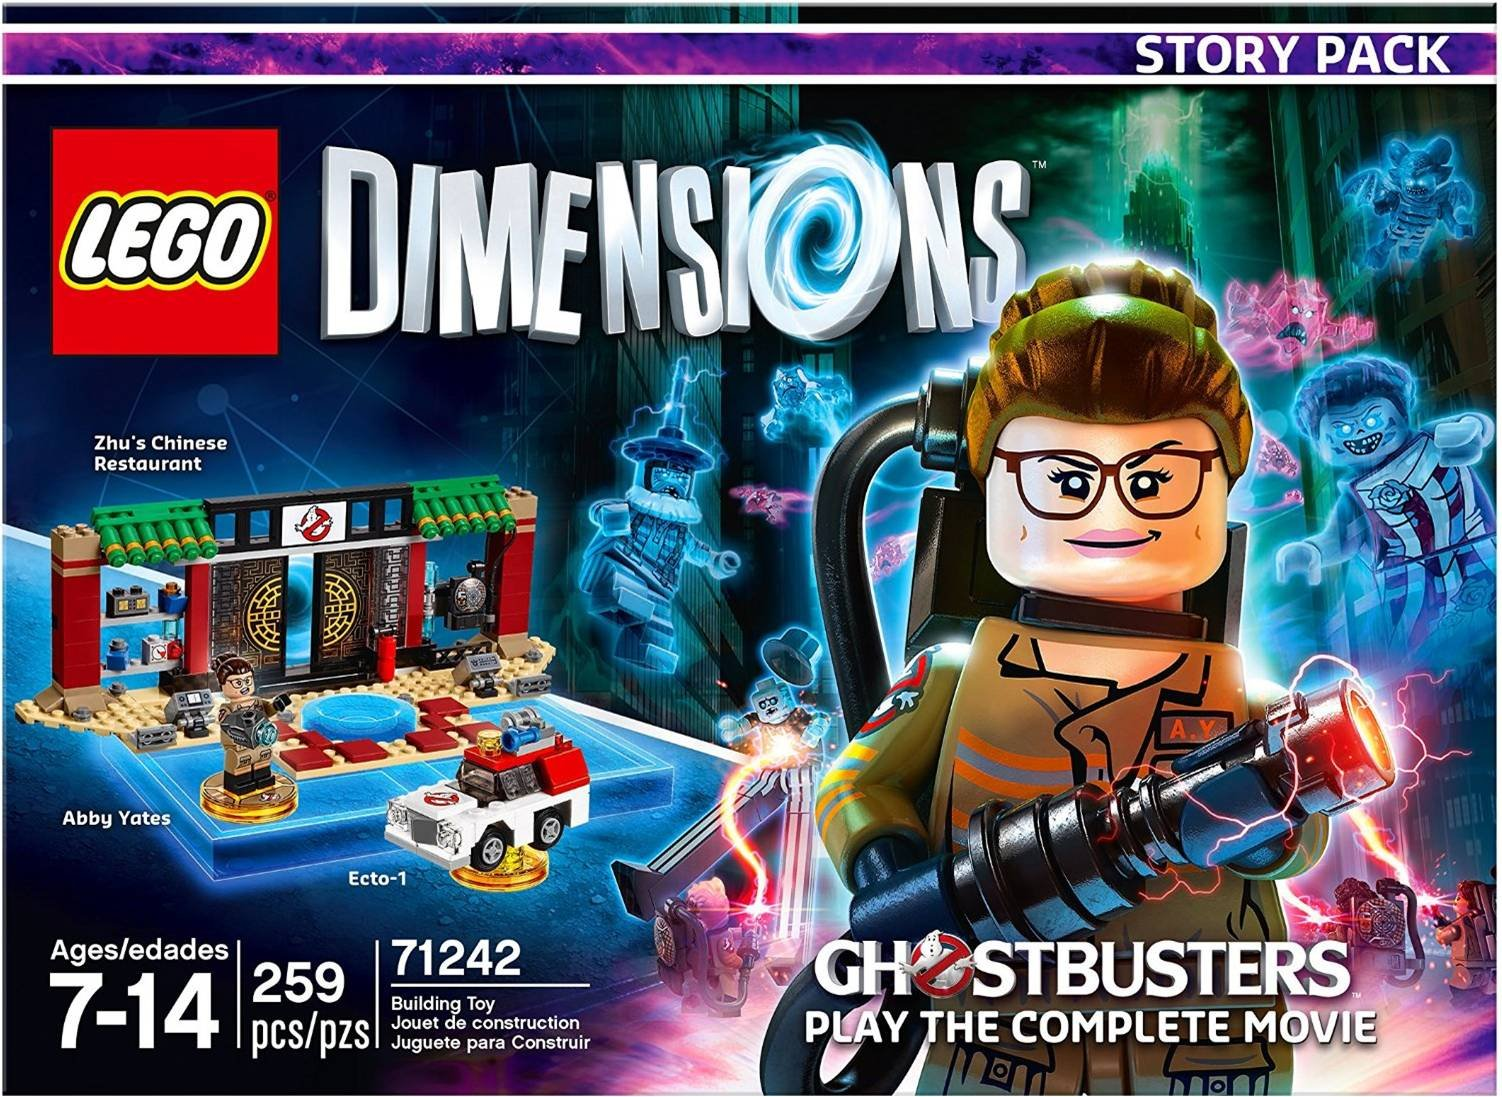 Ghostbusters Story Pack not machine specific